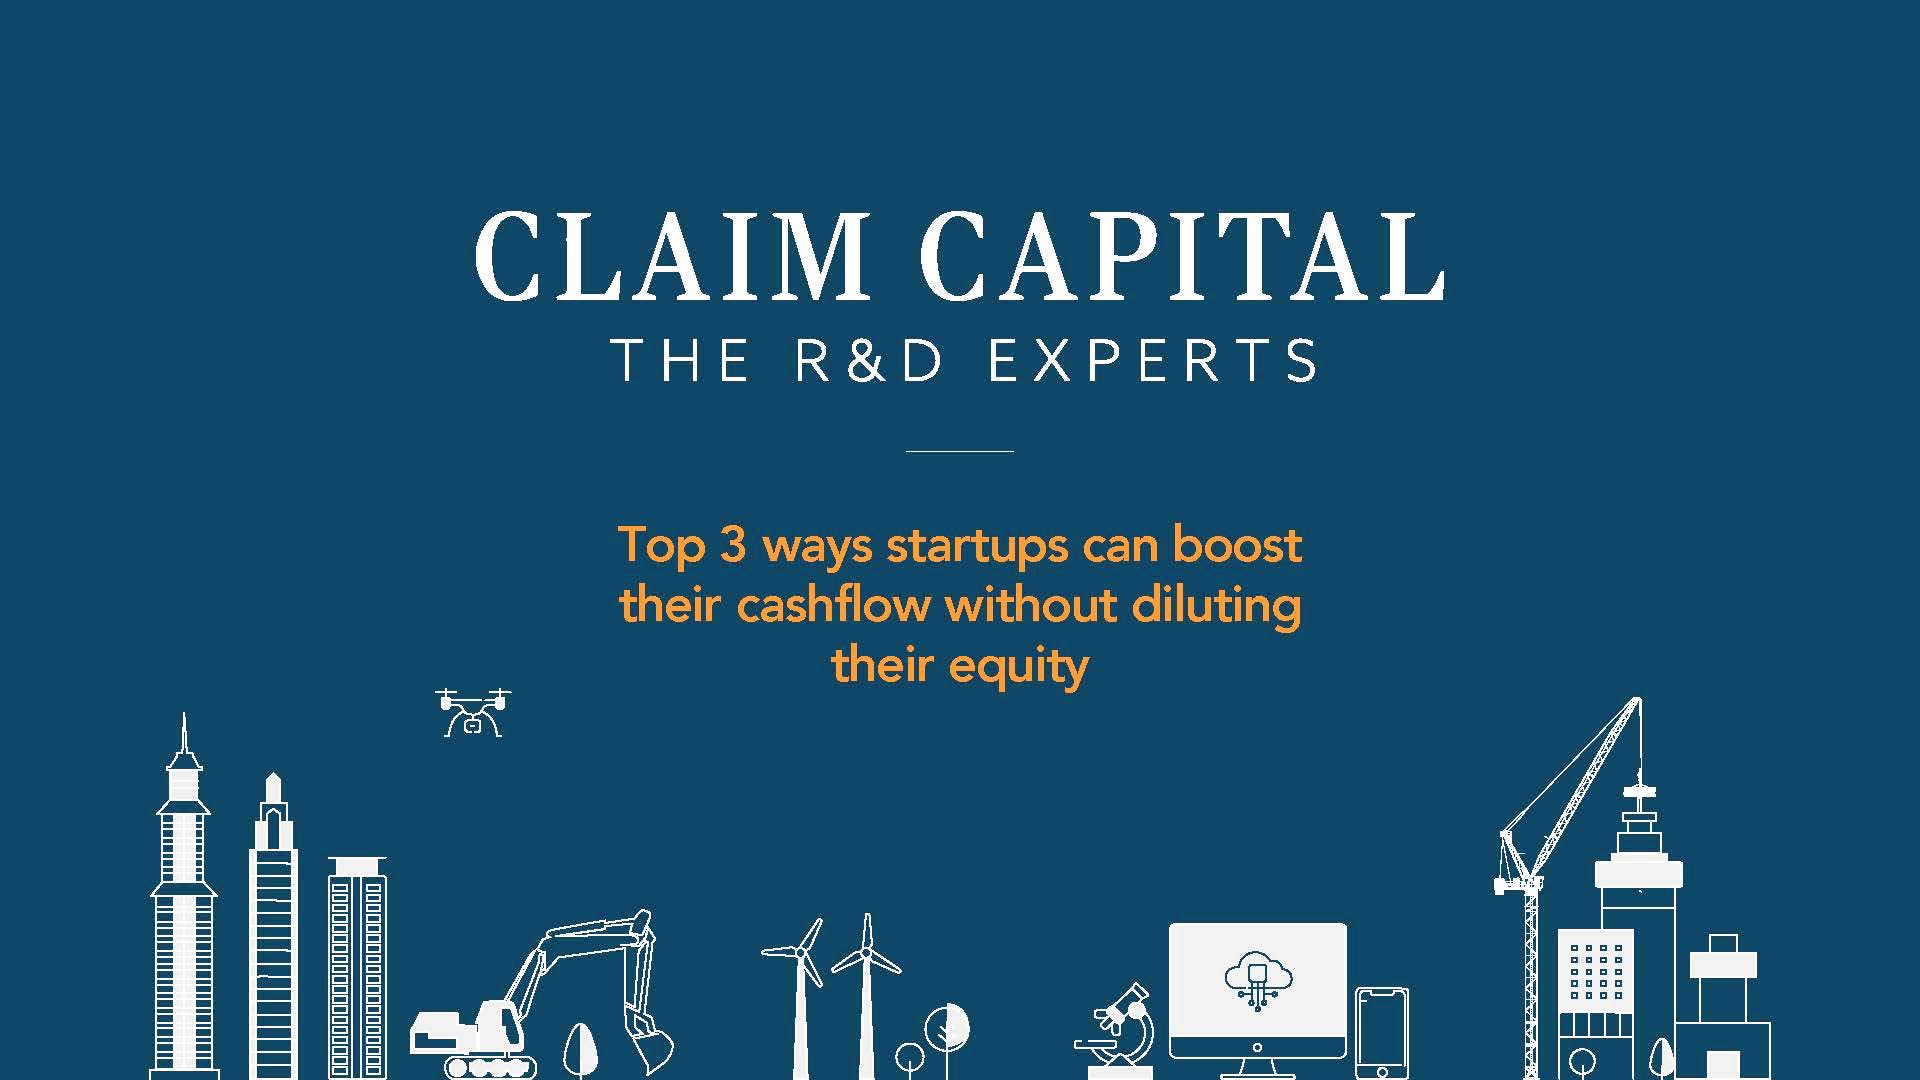 Top 3 ways startups can boost their cashflow without diluting equity